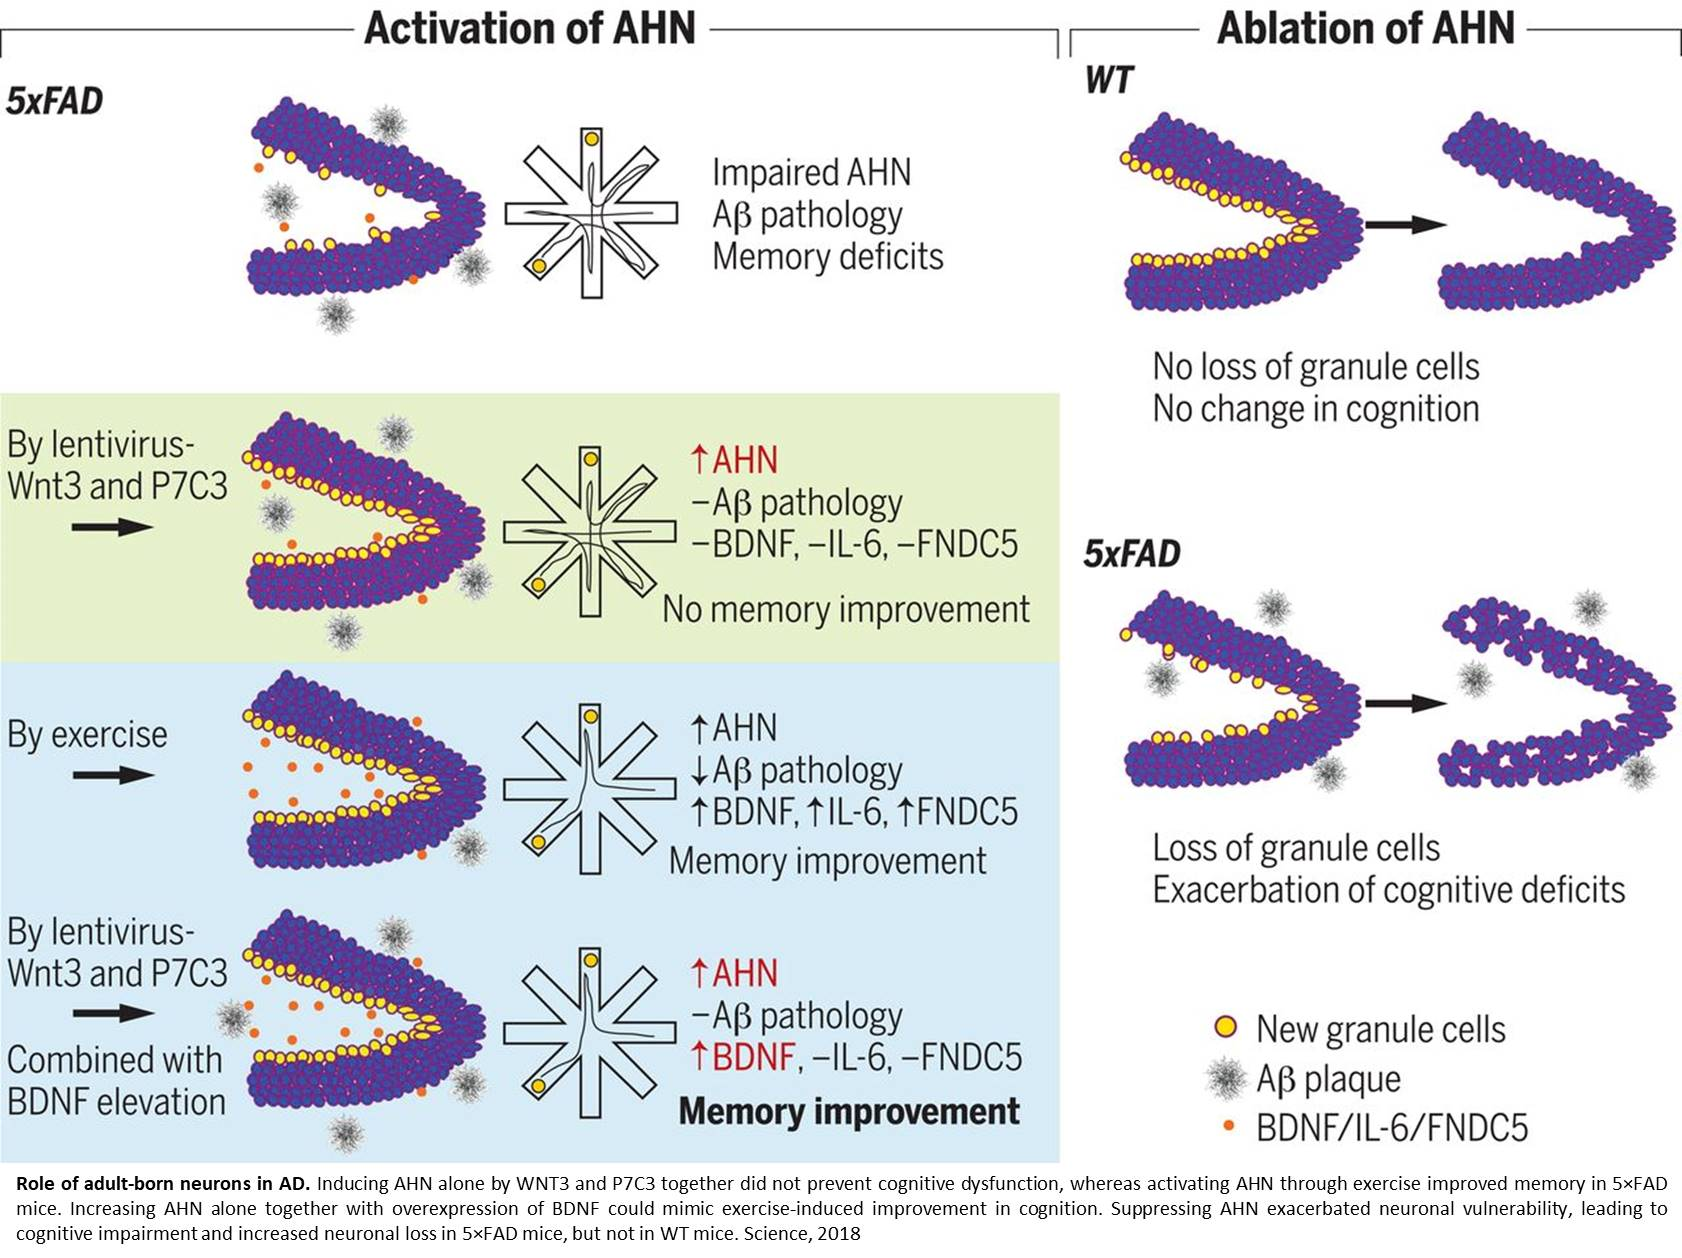 How exercise generates new neurons, improves cognition in Alzheimer's mouse